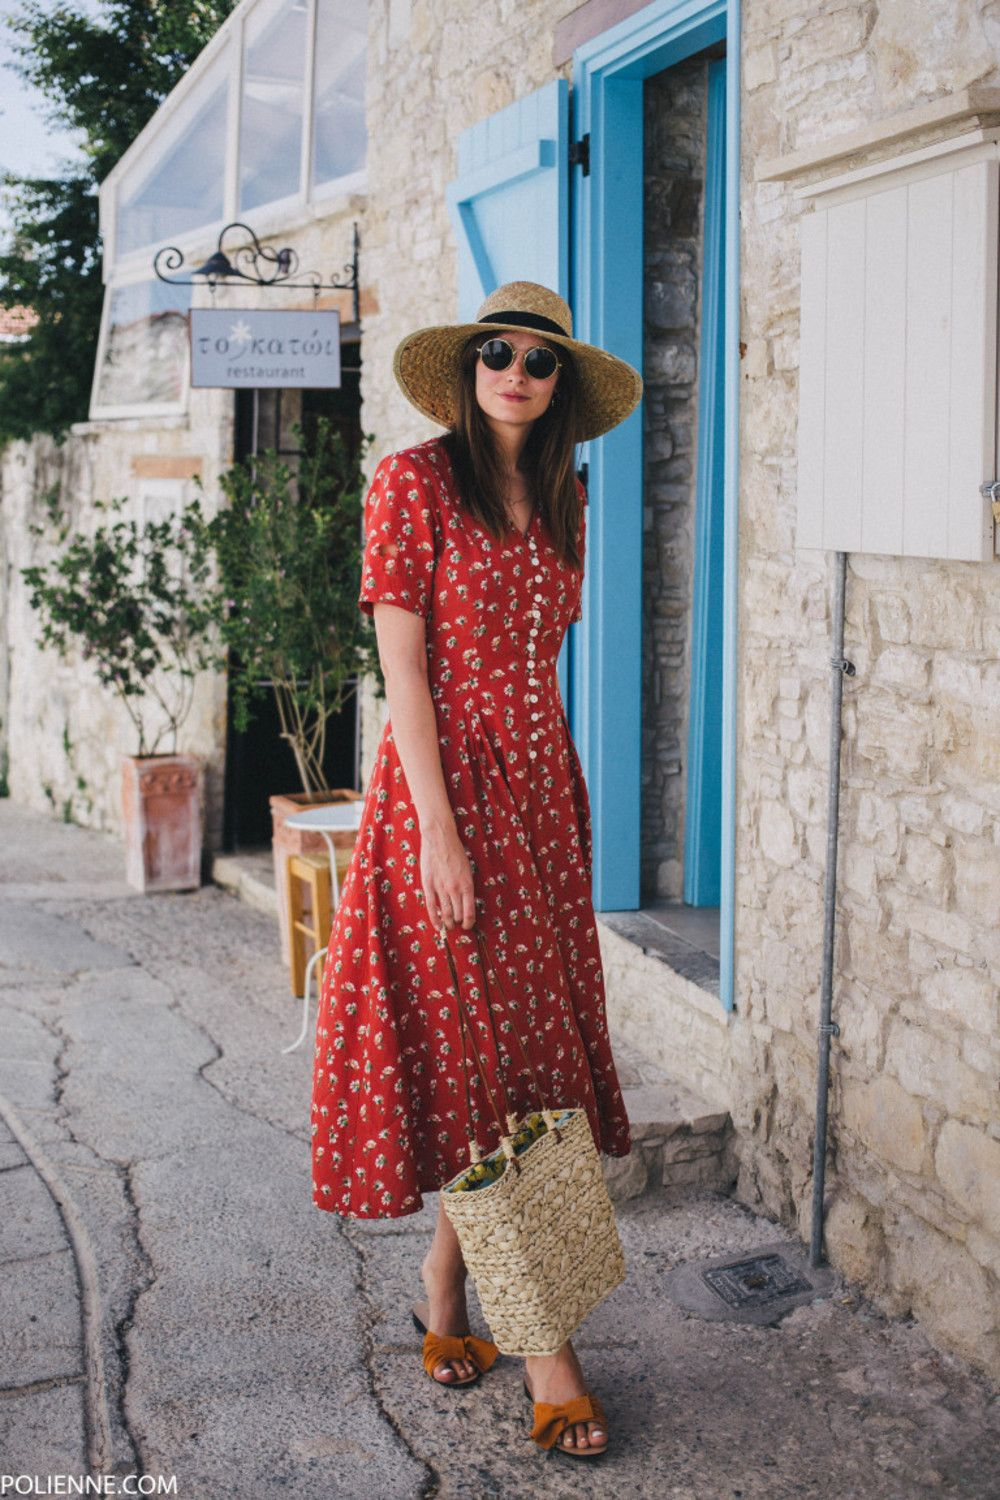 Still Not Feeling It M I A: Still Not Sure How To Style Your Straw Bag?